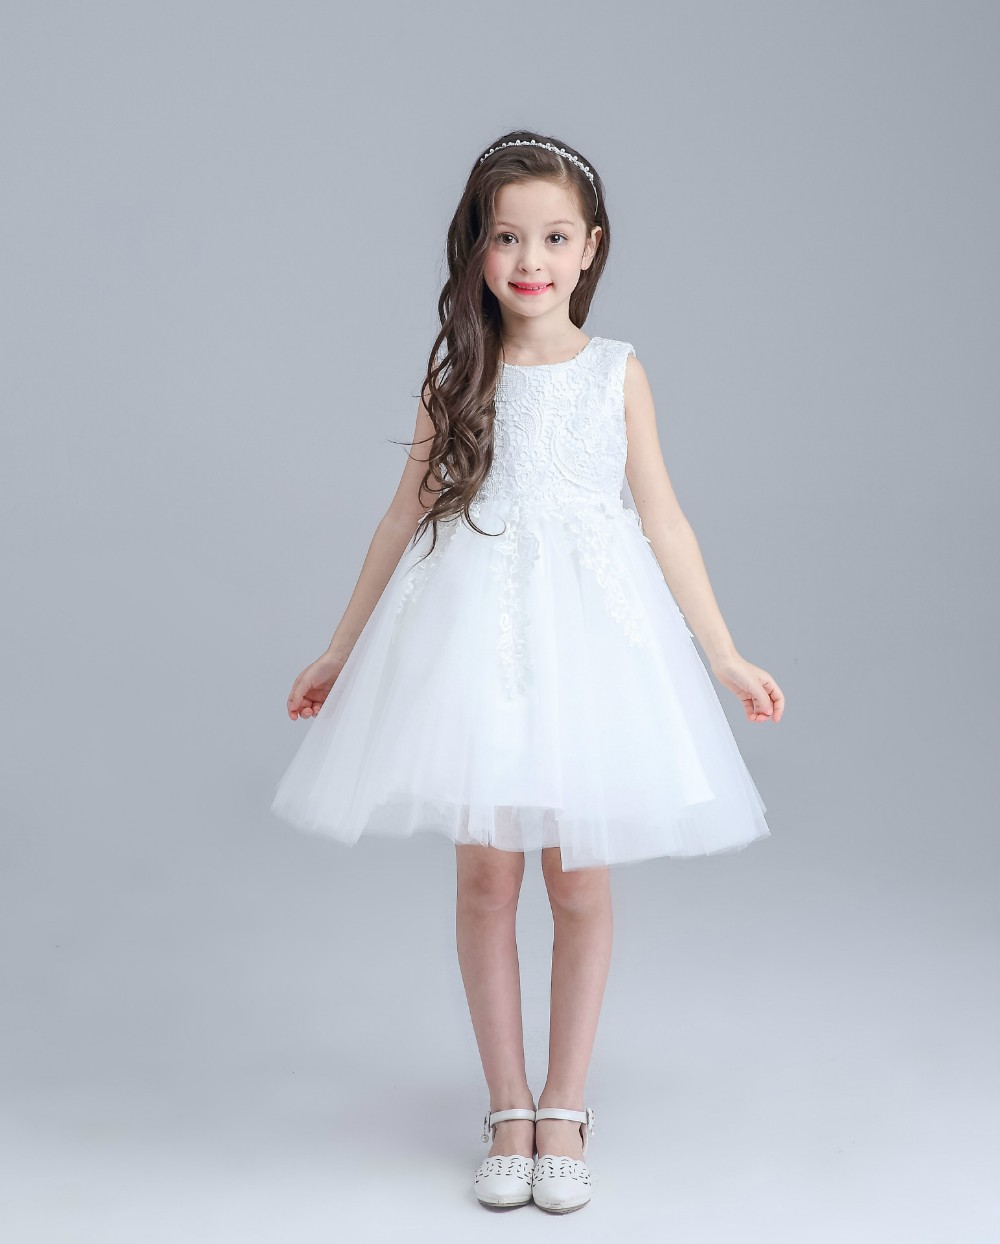 Sampel cinese syle vendita calda princess dress commercio all'ingrosso